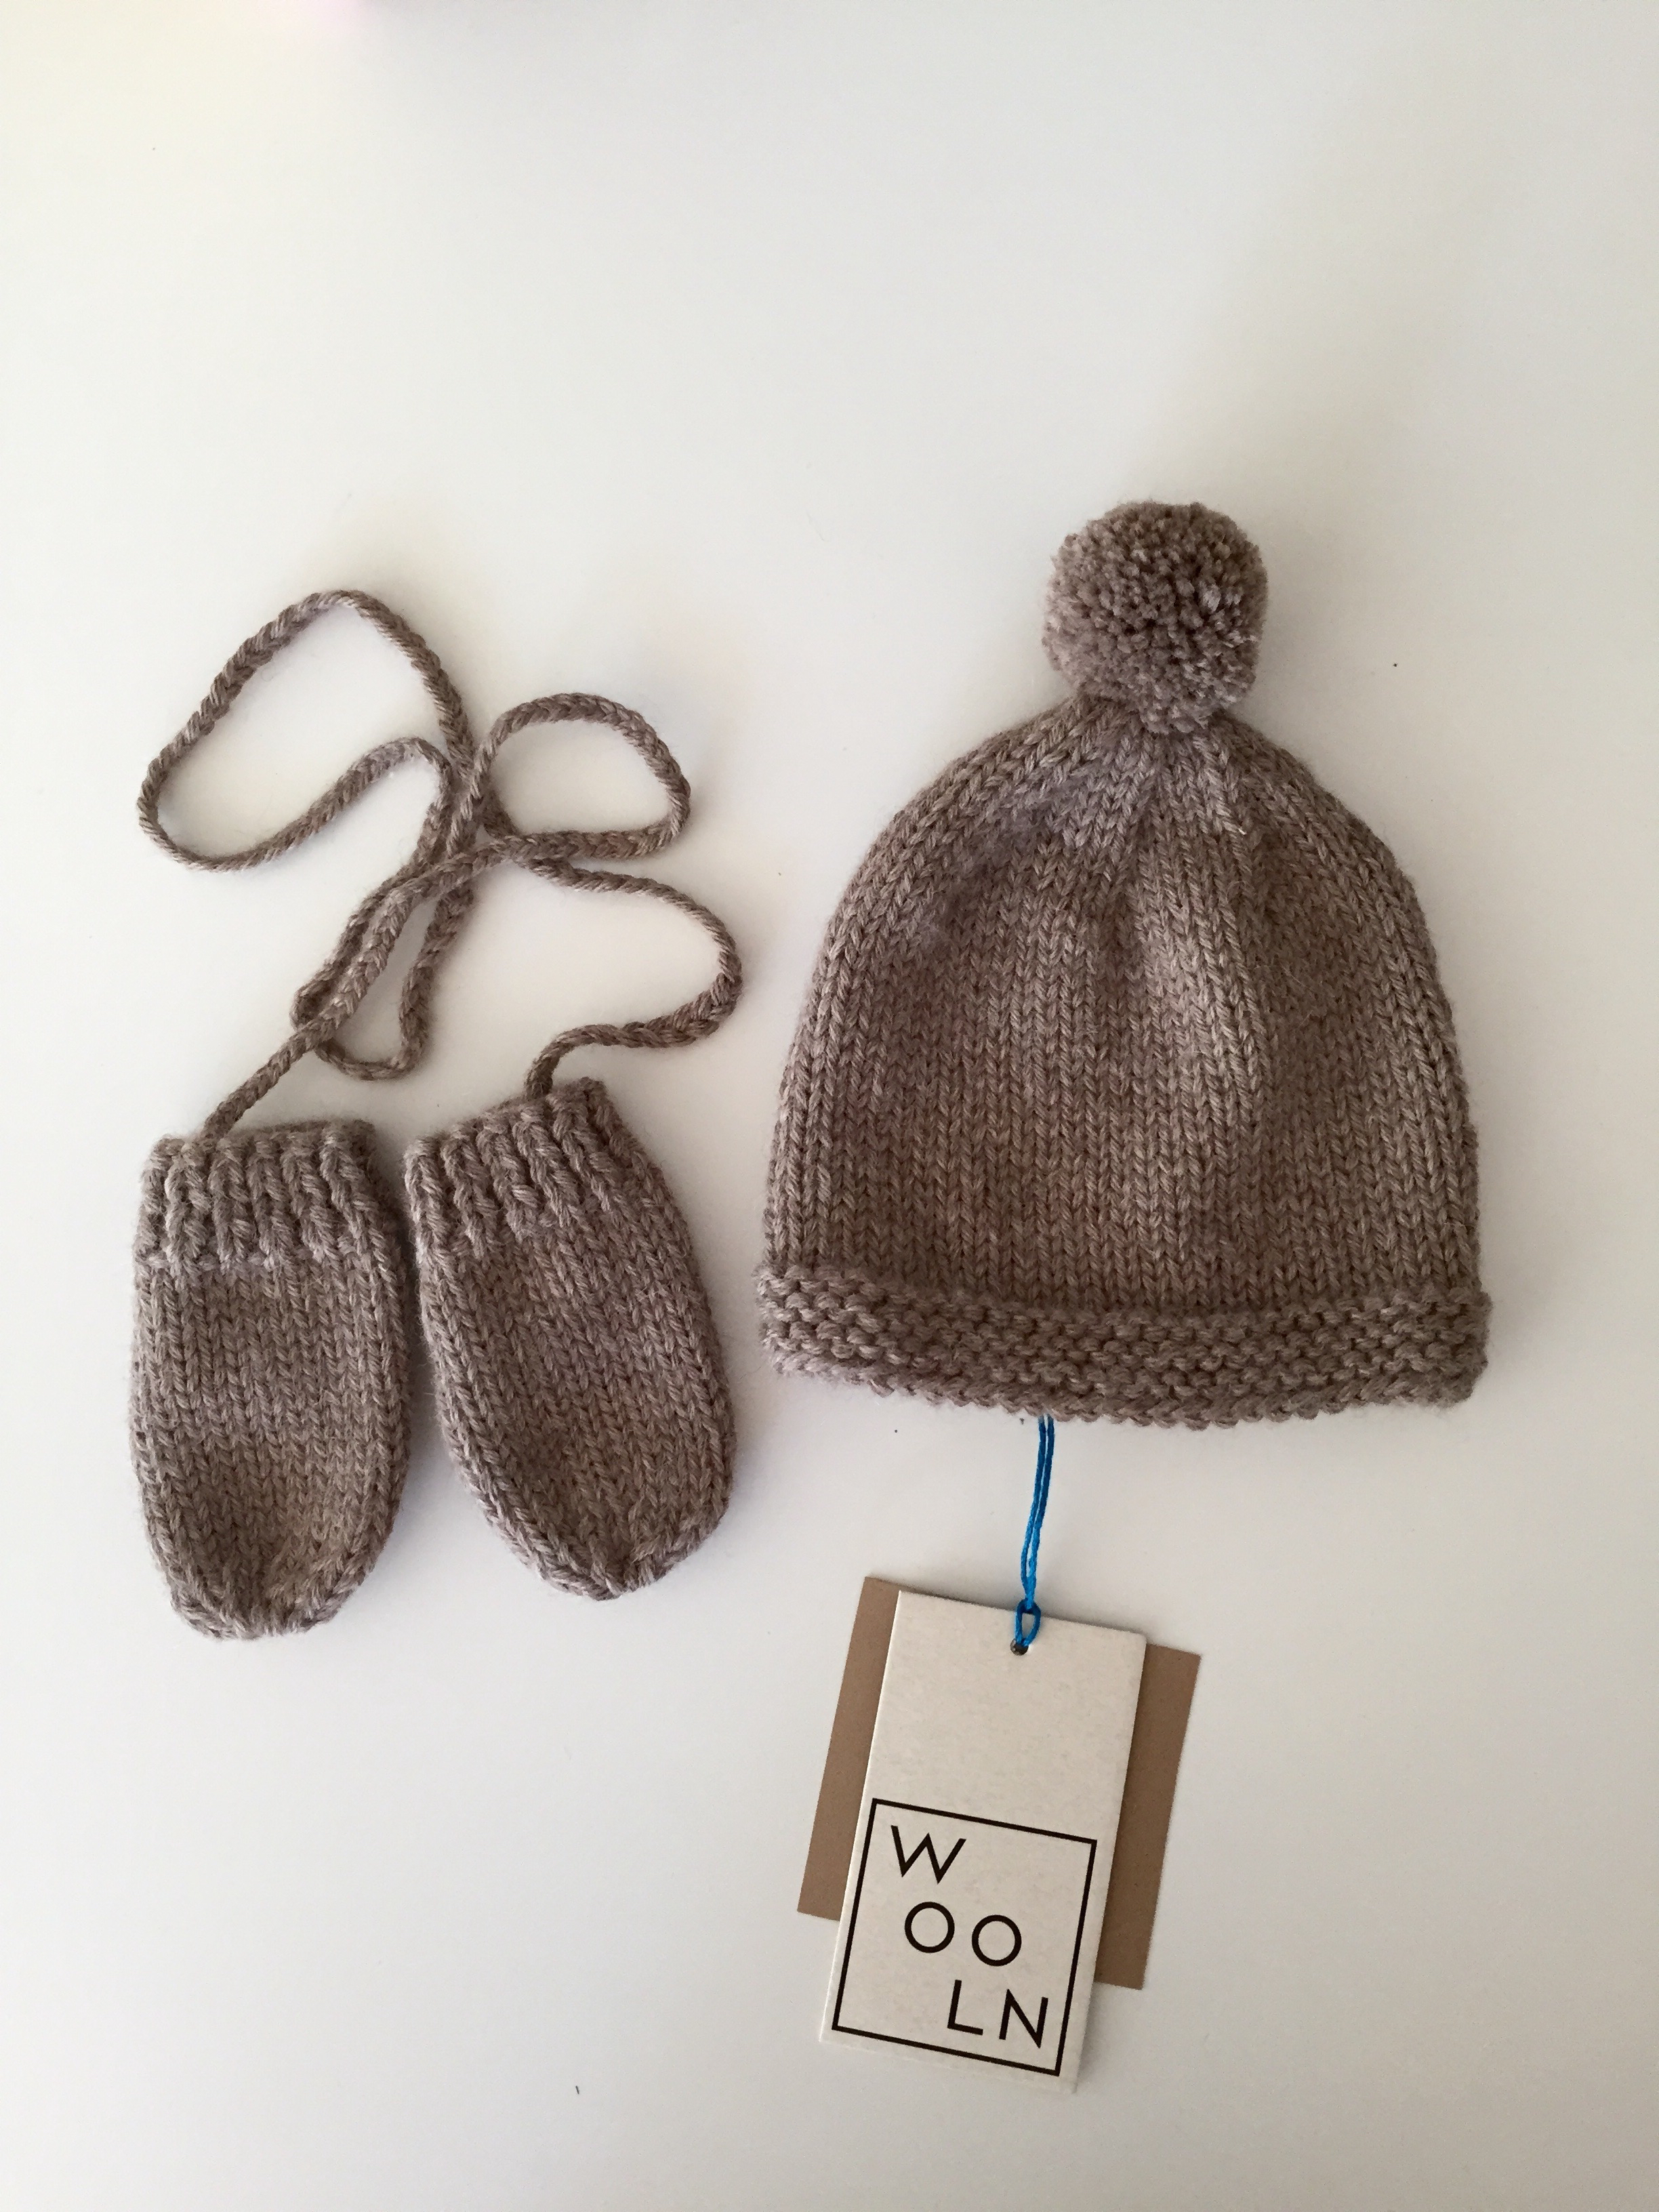 Wooln NYC BabyKit wool hat and mittens